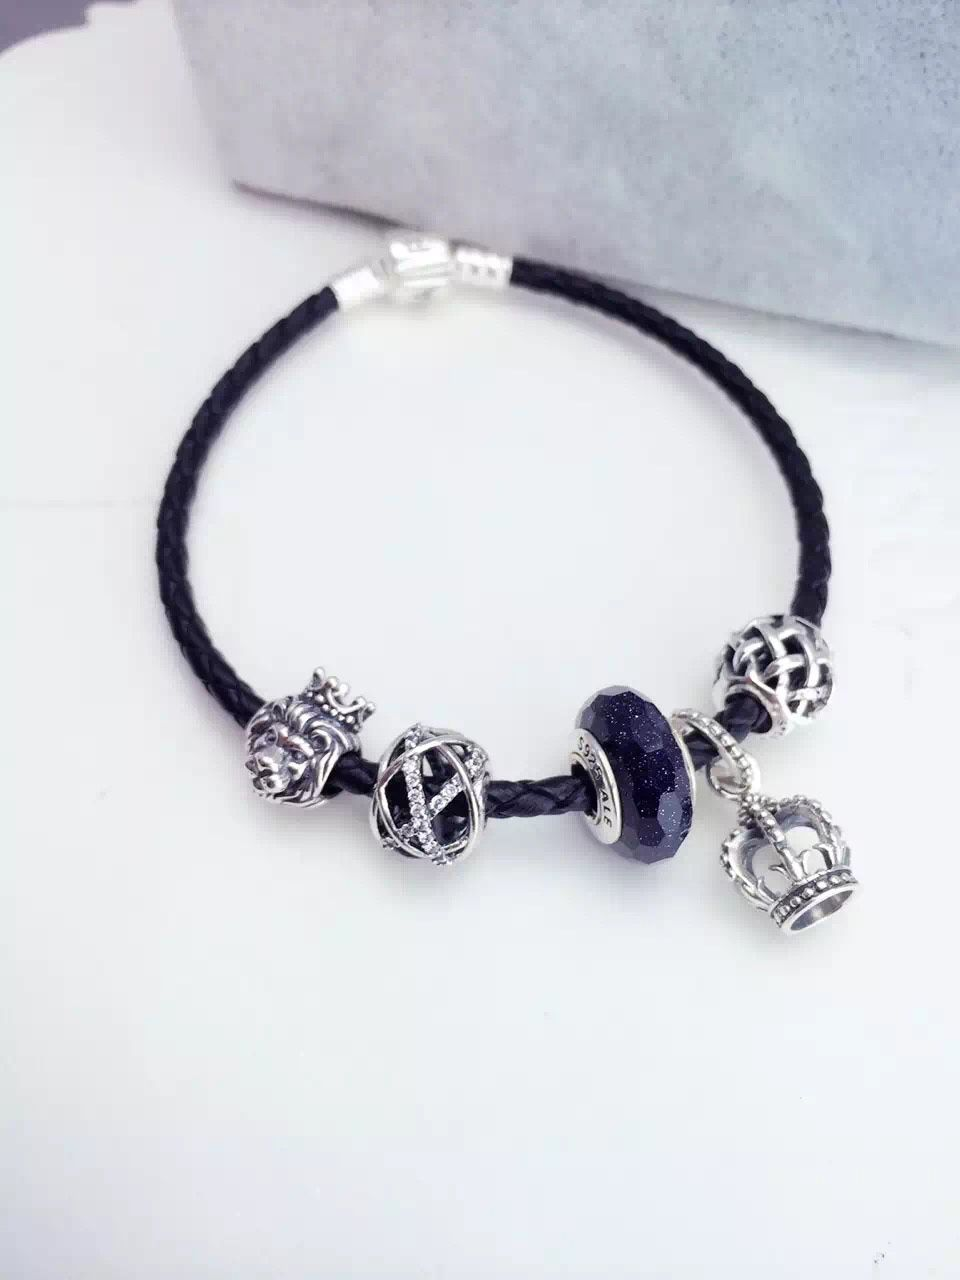 159 Pandora Leather Charm Bracelet Black Hot Sku Cb01690 Ideas